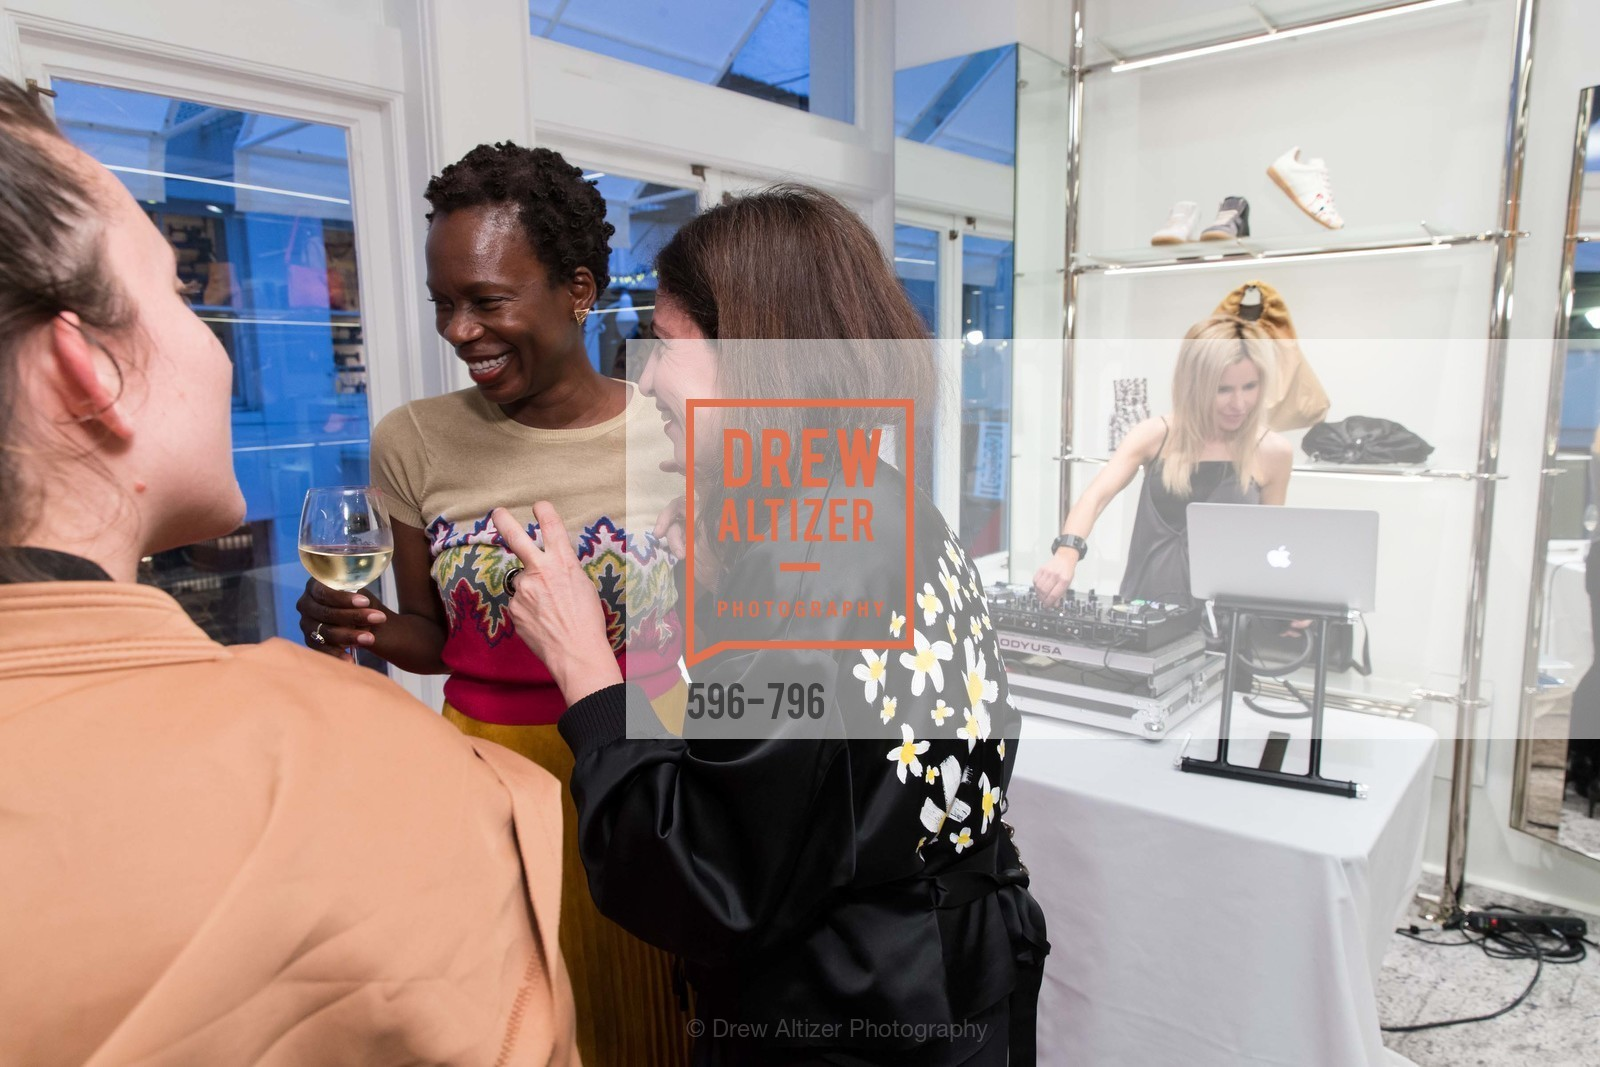 Lola Oladunjoye, Laura Giulini, Lana Adair, MAISON MARGIELA San Francisco Boutique Grand Opening Event, US, April 24th, 2015,Drew Altizer, Drew Altizer Photography, full-service agency, private events, San Francisco photographer, photographer california